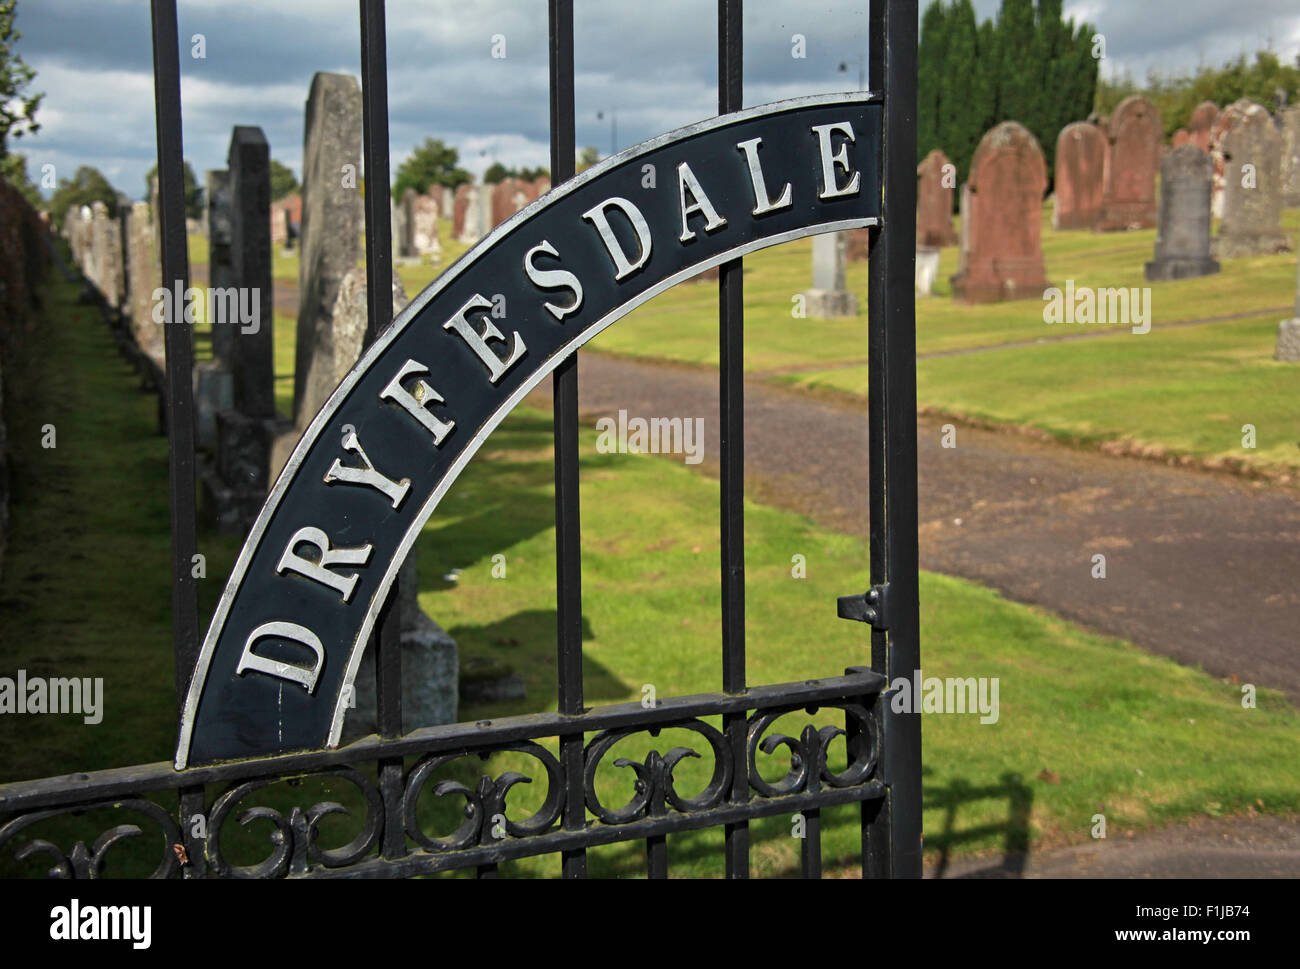 EntranceGates Dryfesdale Cemetary Scotland,Lodge,Visitors,Centre,DLVC,Trust,Lockerbie,Memorial,Scotland,Victims,Pan,Am,PanAm,flight,103,bomb,bombing,terrorist,December,1988,attack,crash,dead,site,21/12/1988,270,victims,Scottish,Town,conspiracy,blast,Tundergarth,Room,garden,of,Dryfesdale,New York,GoTonySmith,Lodge,Visitors,Centre,DLVC,Trust,Lockerbie,Memorial,Scotland,Victims,Pan,Am,PanAm,flight,103,bomb,bombing,terrorist,December,1988,attack,crash,dead,site,21/12/1988,270,victims,Scottish,Town,conspiracy,blast,Tundergarth,Room,garden,of,Dryfesdale,Cemetery,news,Cultural,understanding,remembering,innocent,transatlantic,Frankfurt,Detroit,Libyan,Libya,Colonel Muammar Gaddafi,civil,case,compensation,terrorism,PA103,30,30years,years,Syracuse,University,SU,family,collections,Story,Archive,Archives,40,35,Timeline,saga,disaster,air,Scholars,program,programs,remembrance,Clipper Maid of the Seas,N739PA,Boeing,727,plane,aircraft,Scotland,UK,United Kingdom,GB,Great Britain,resting,place,Buy Pictures of,Buy Images Of,New York,al megrahi,30 Years